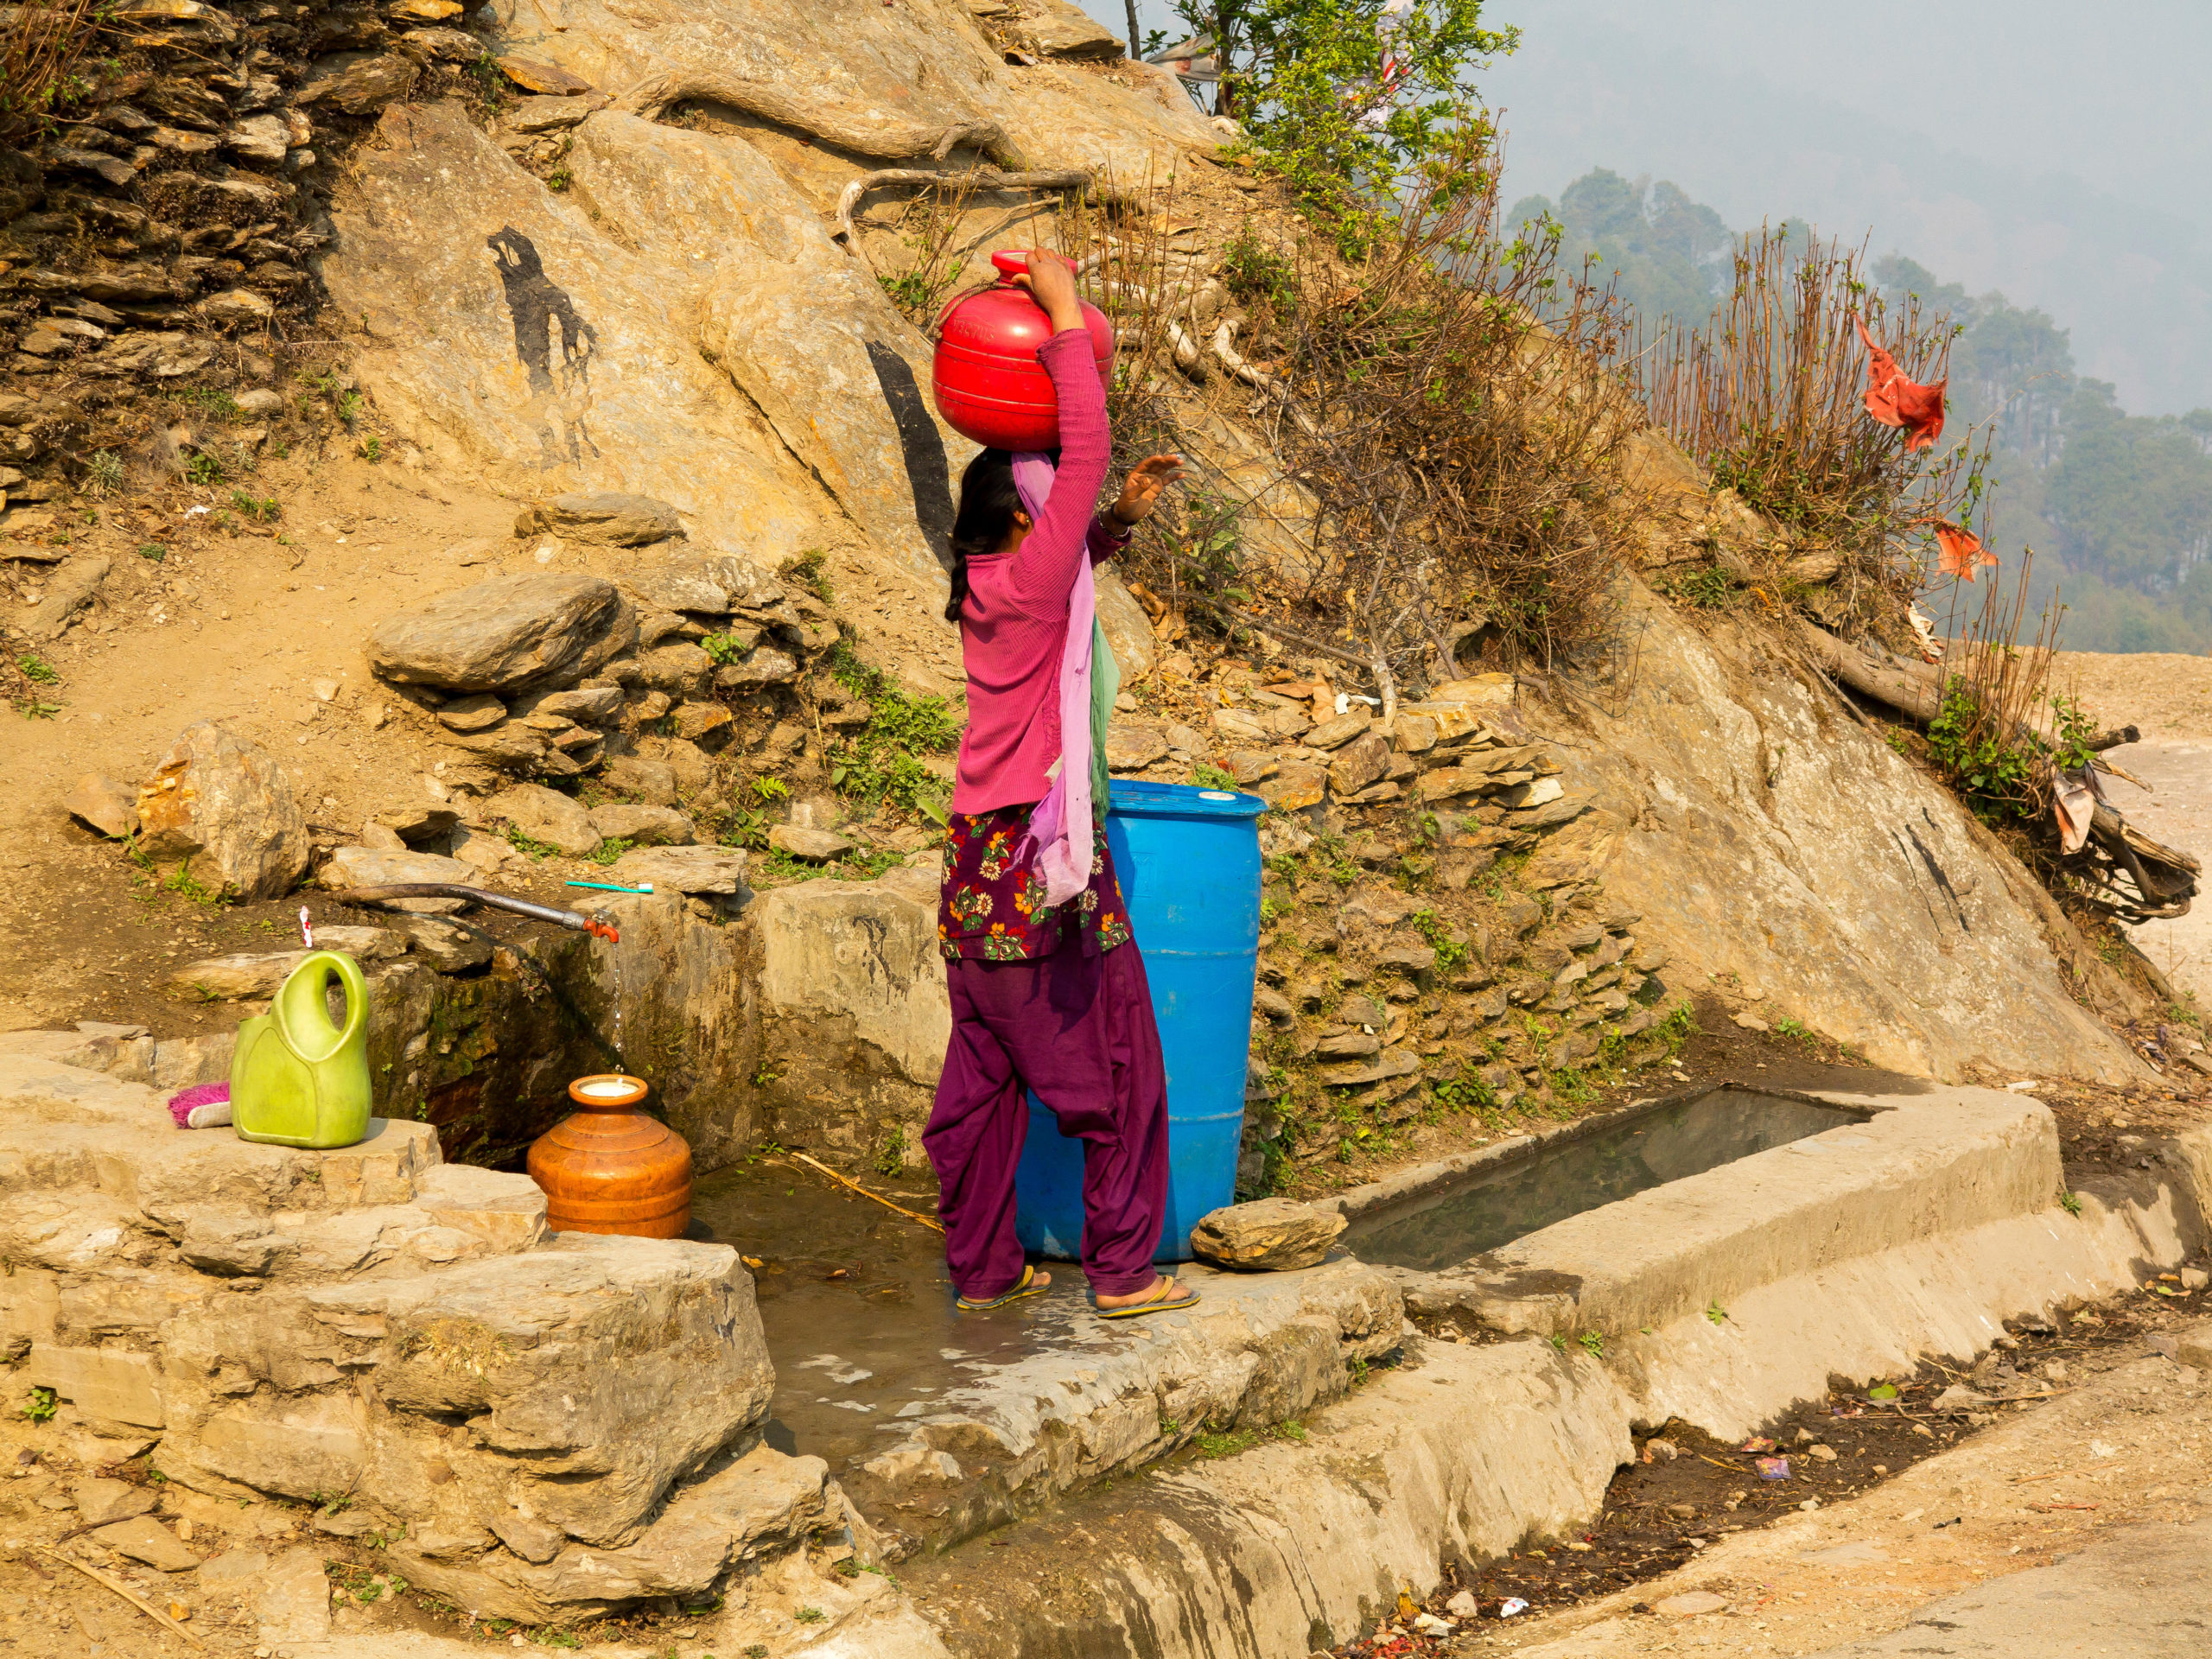 A woman fetches water from a spring at Tula Kote village in the Kumaon hills, Uttarakhand (Image: Fernando Quevedo de Oliveira / Alamy)